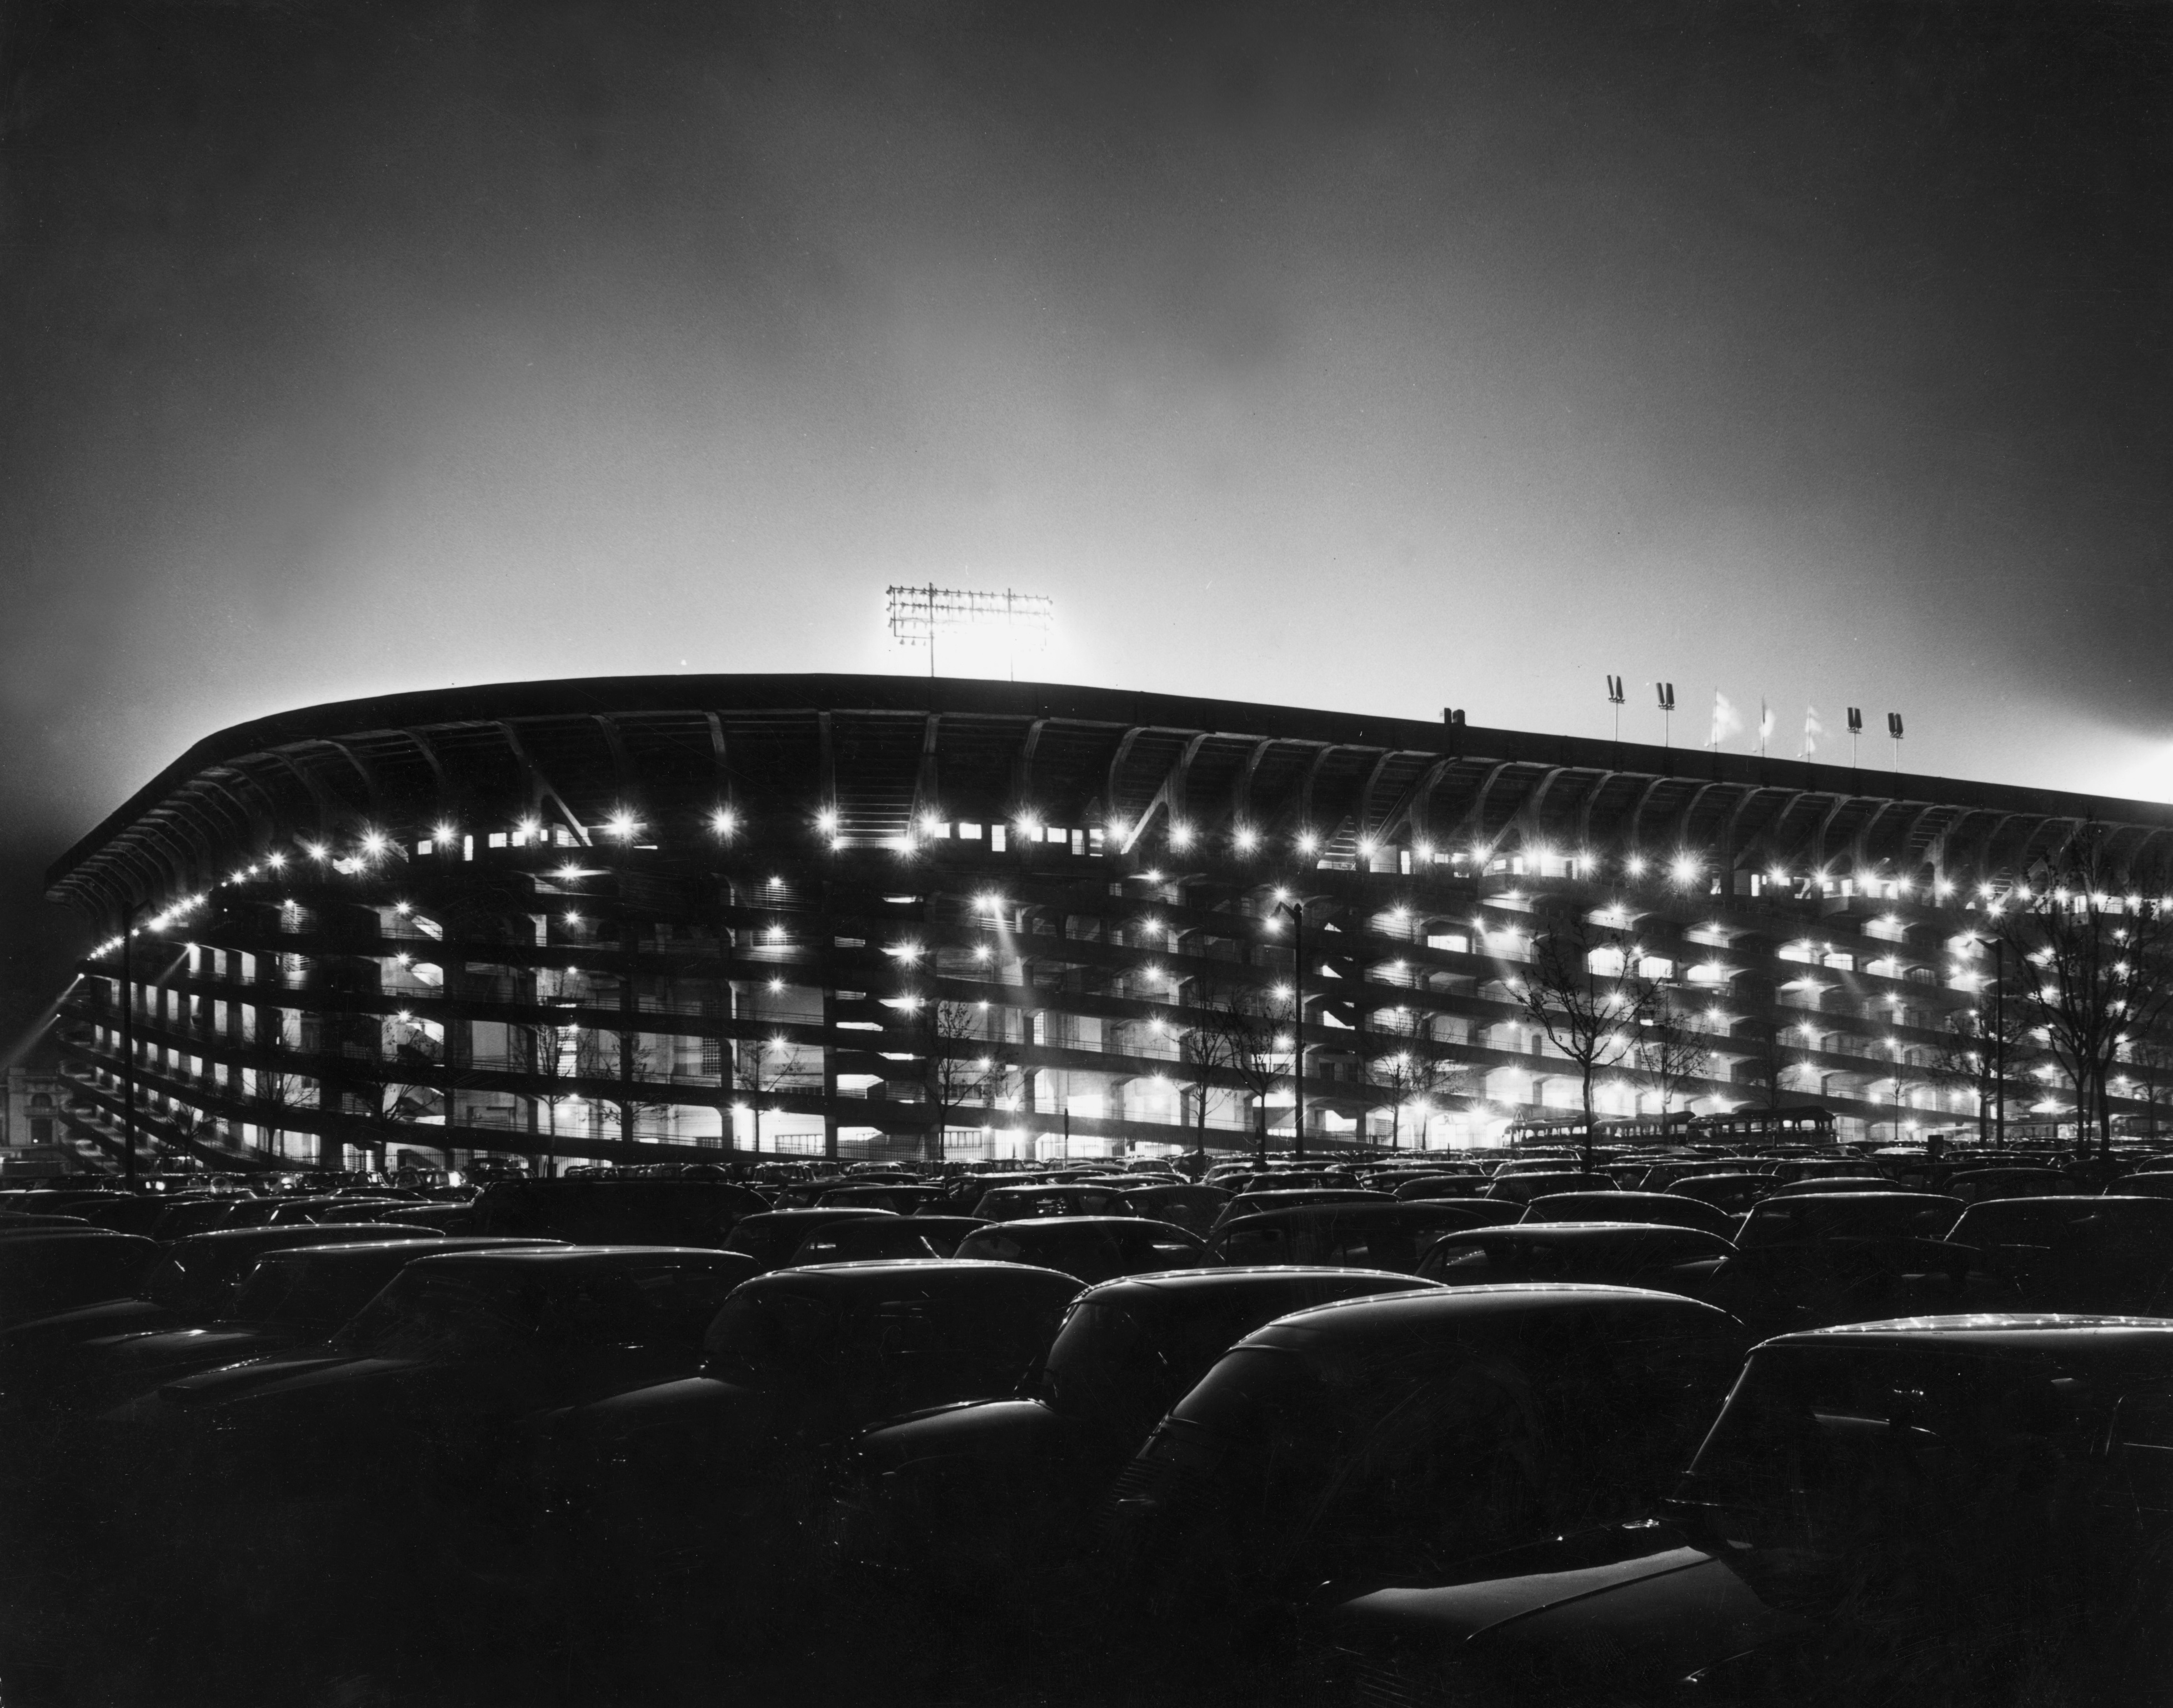 circa 1965: The San Siro football stadium in Milan where both AC Milan and Inter Milan play their home matches. (Photo by Keystone/Getty Images)